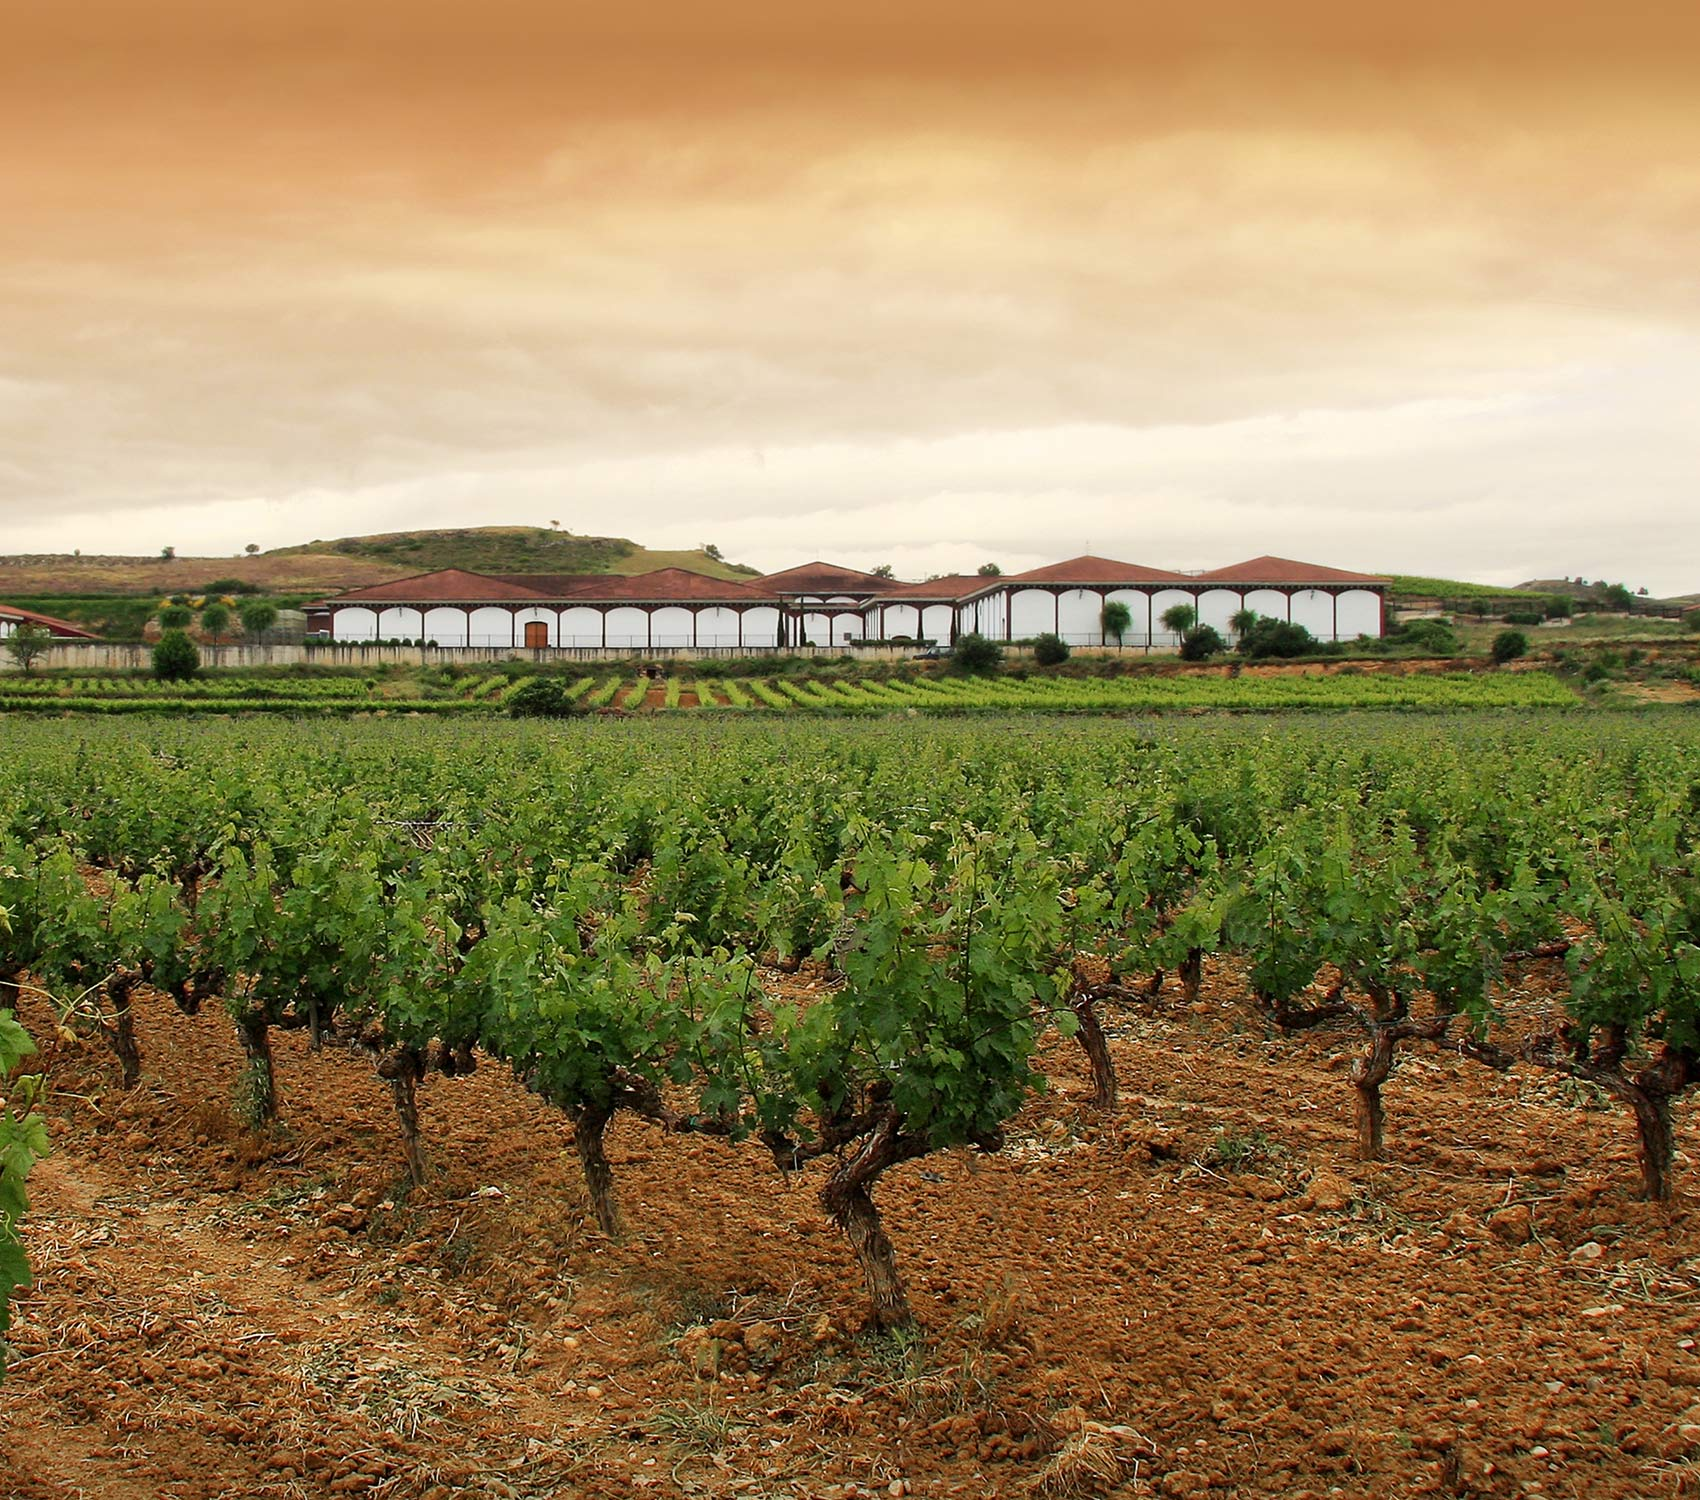 El Coto de Rioja cellar and vineyards